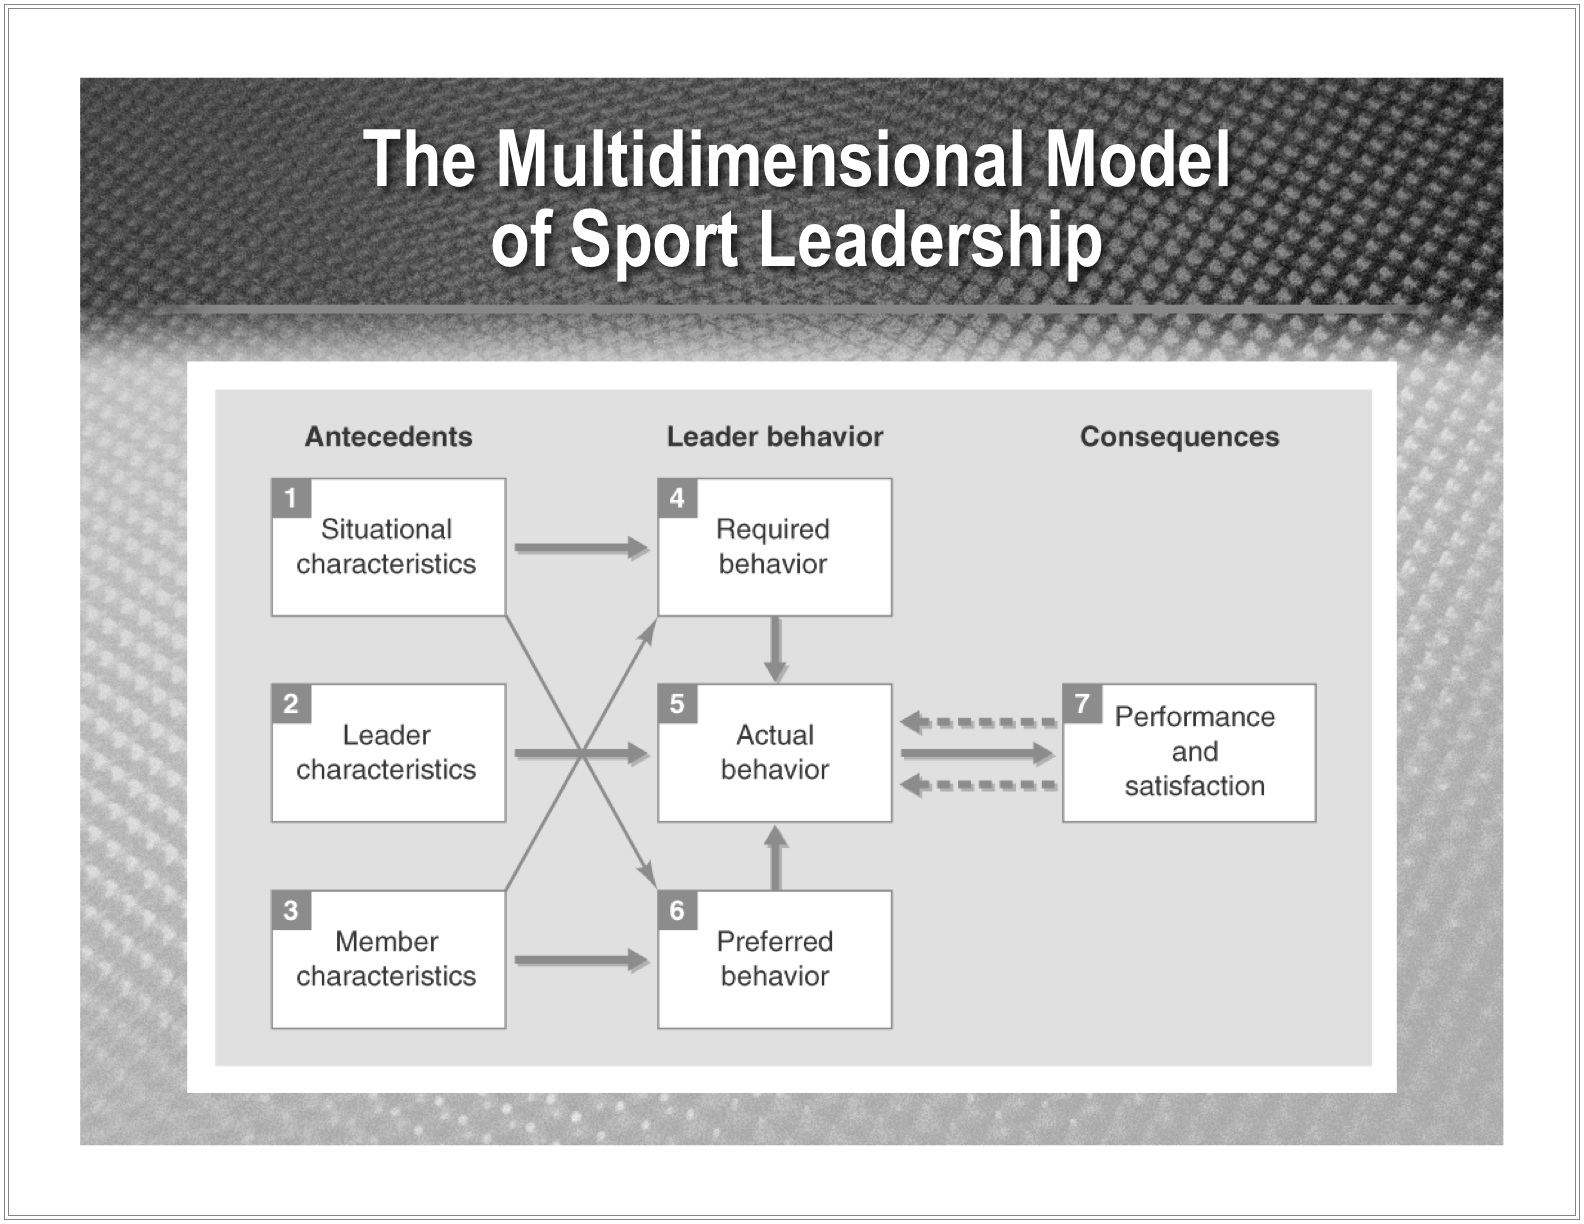 Chelladurai's Multidimensional Model of Leadership in Sport